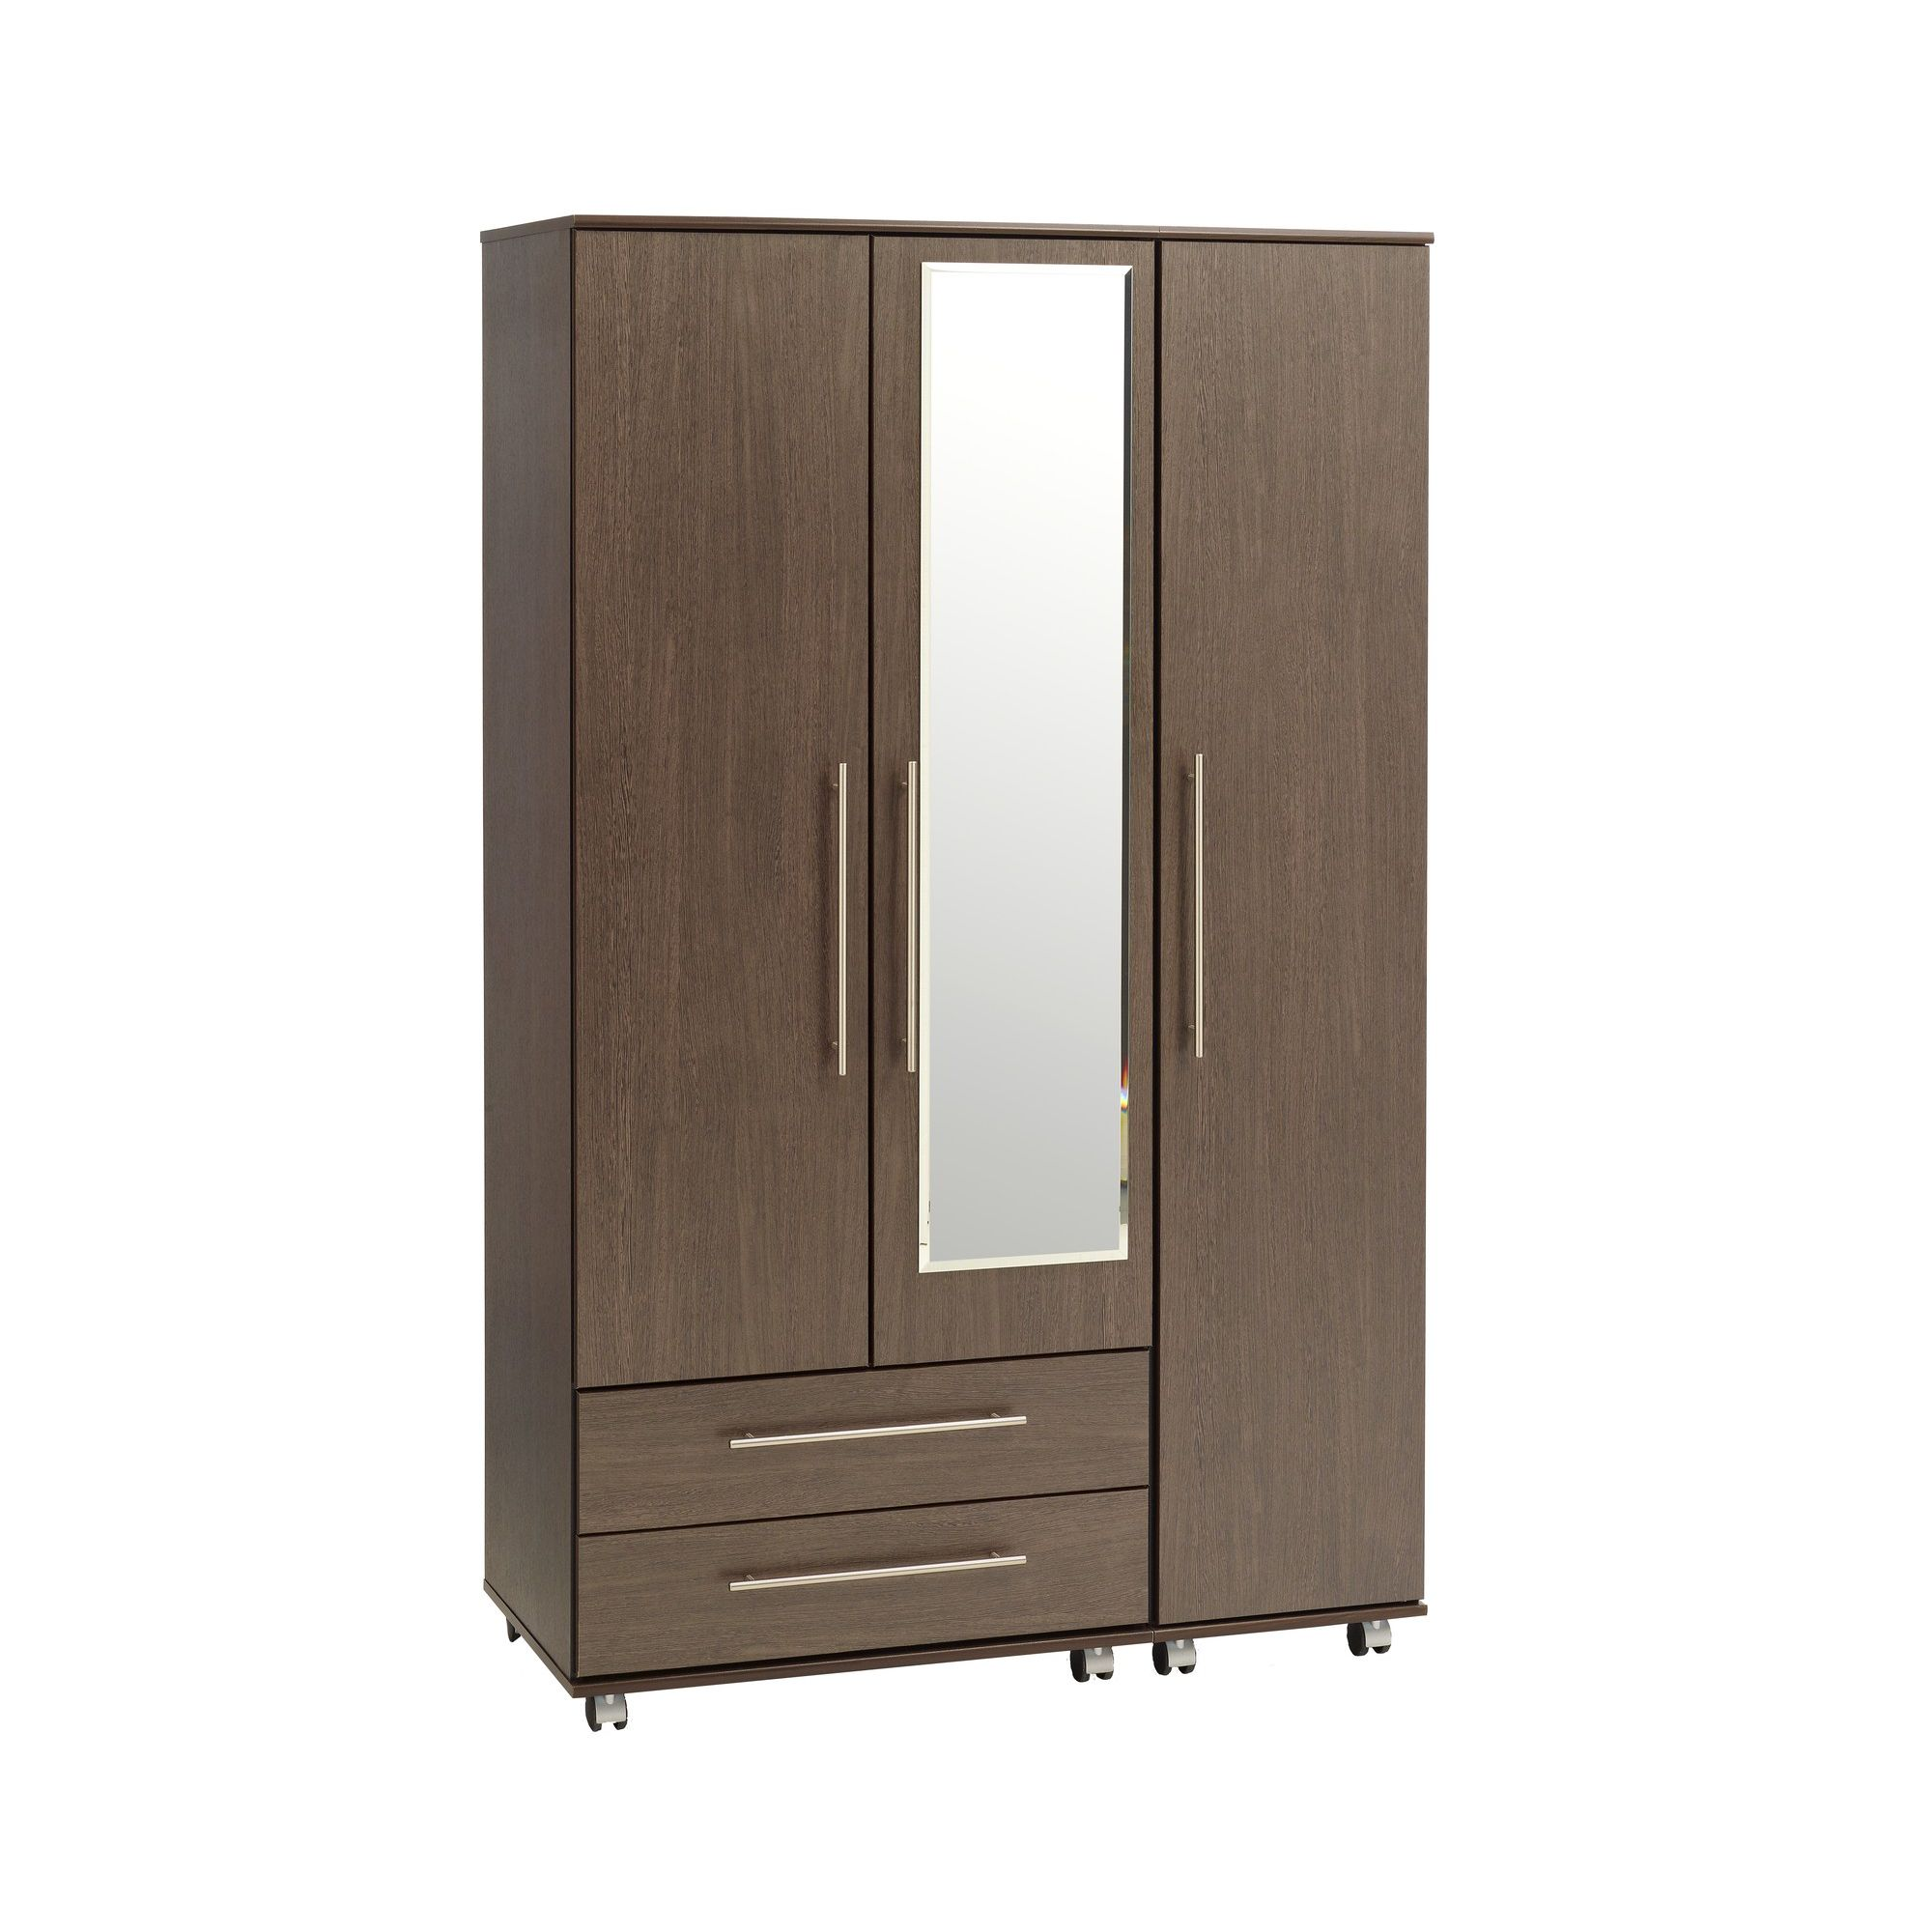 Ideal Furniture New York Triple Wardrobe with Two Drawers and Mirror - American Walnut at Tesco Direct